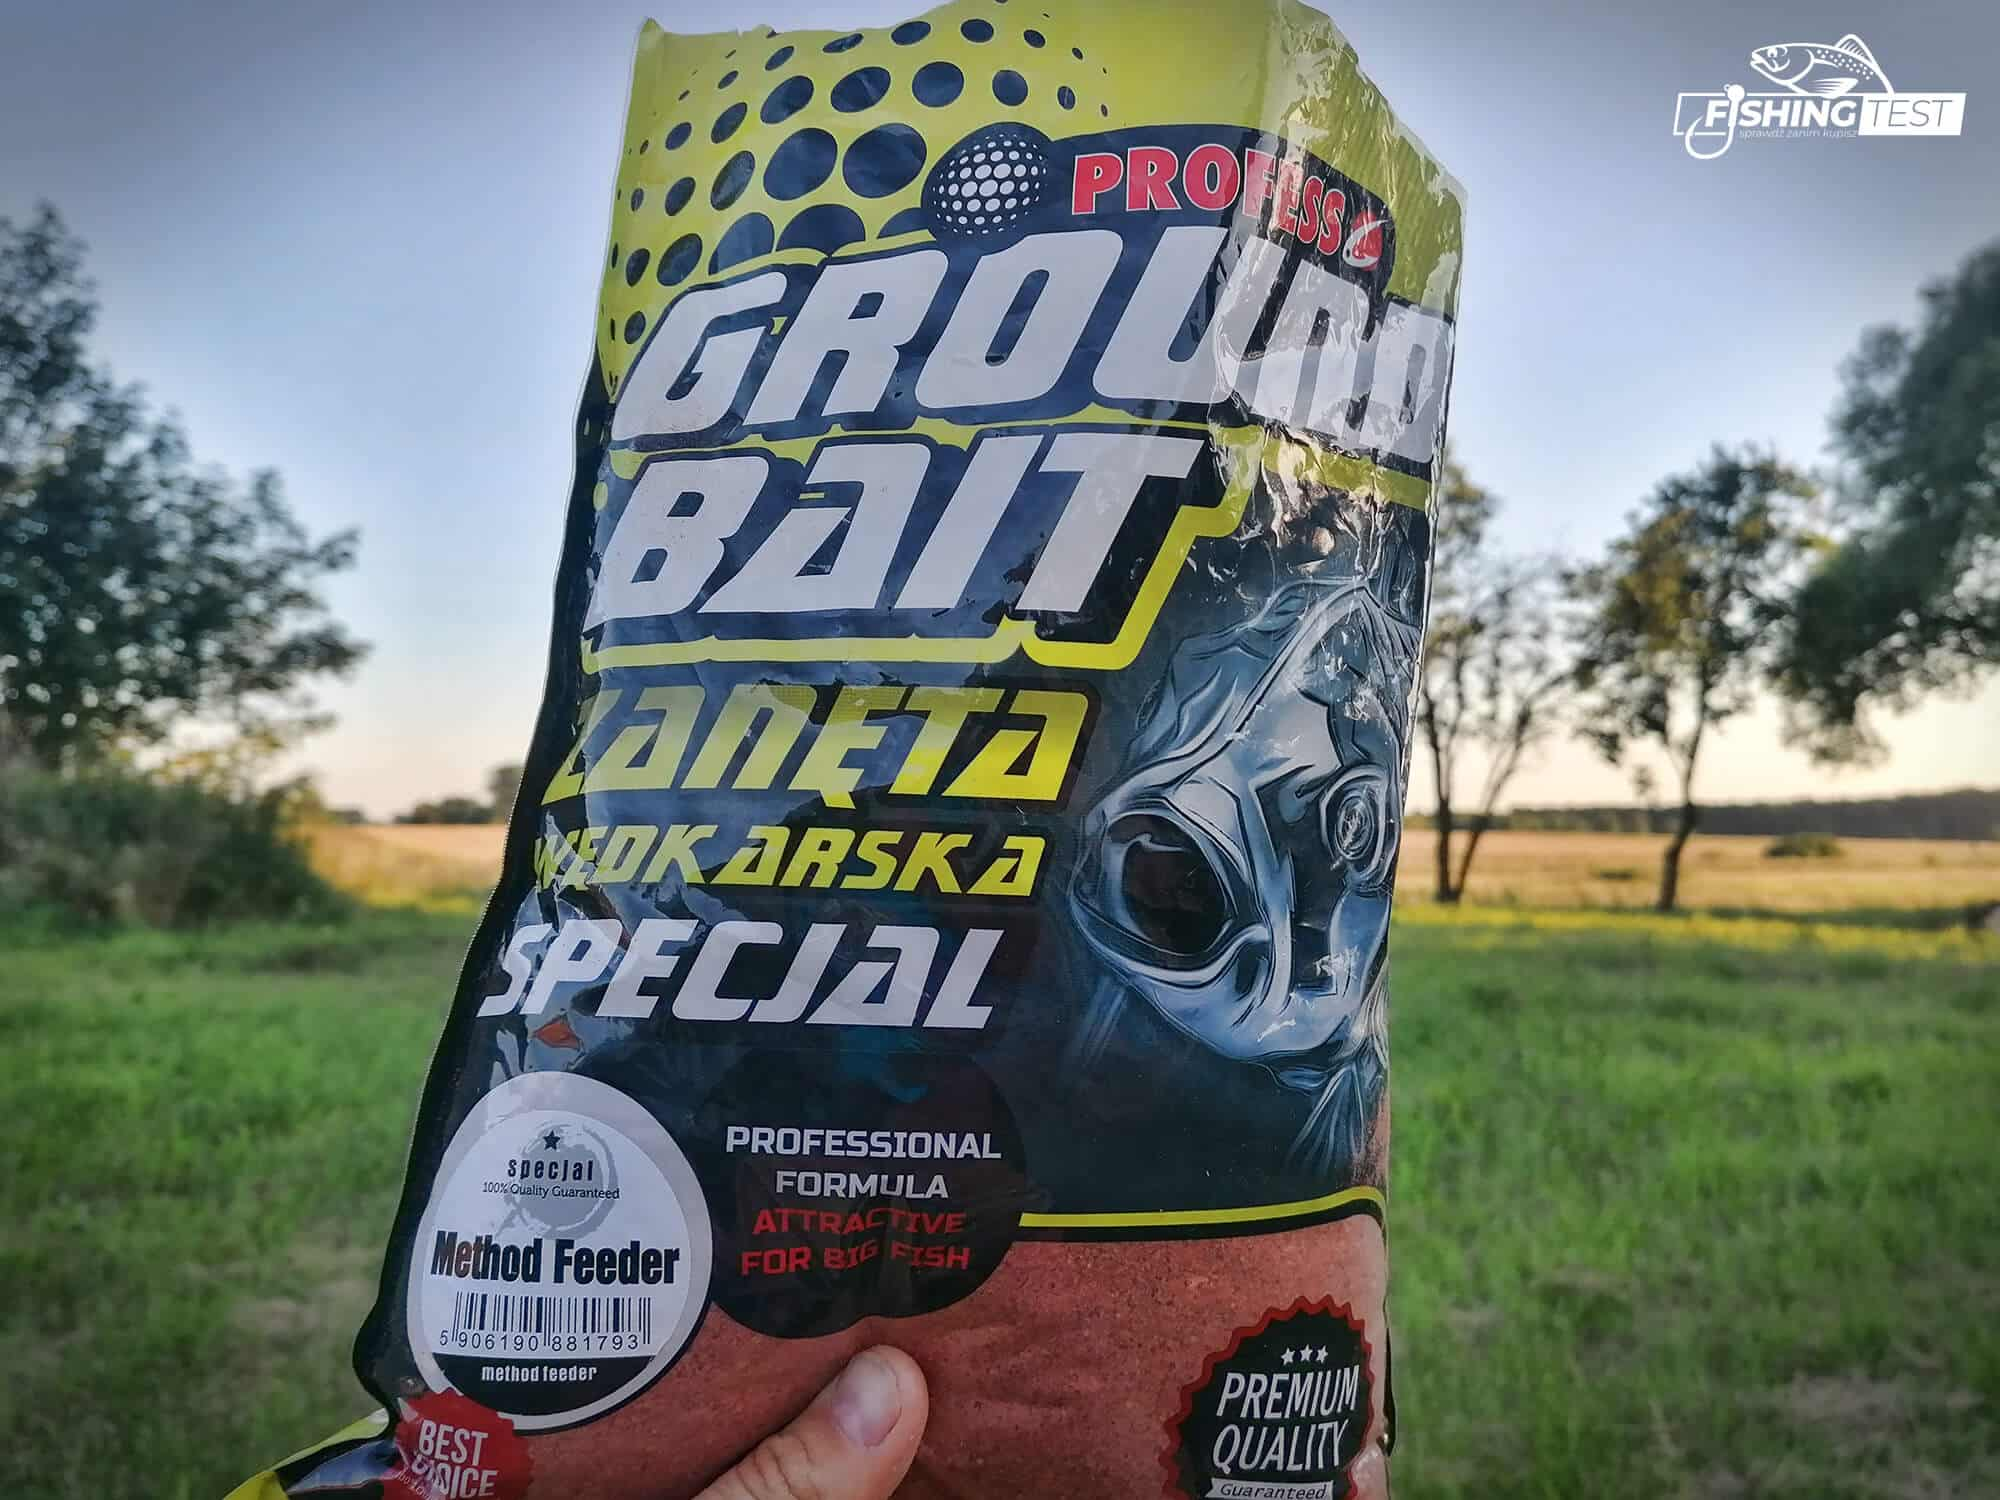 zanęta method feeder ground bait profess